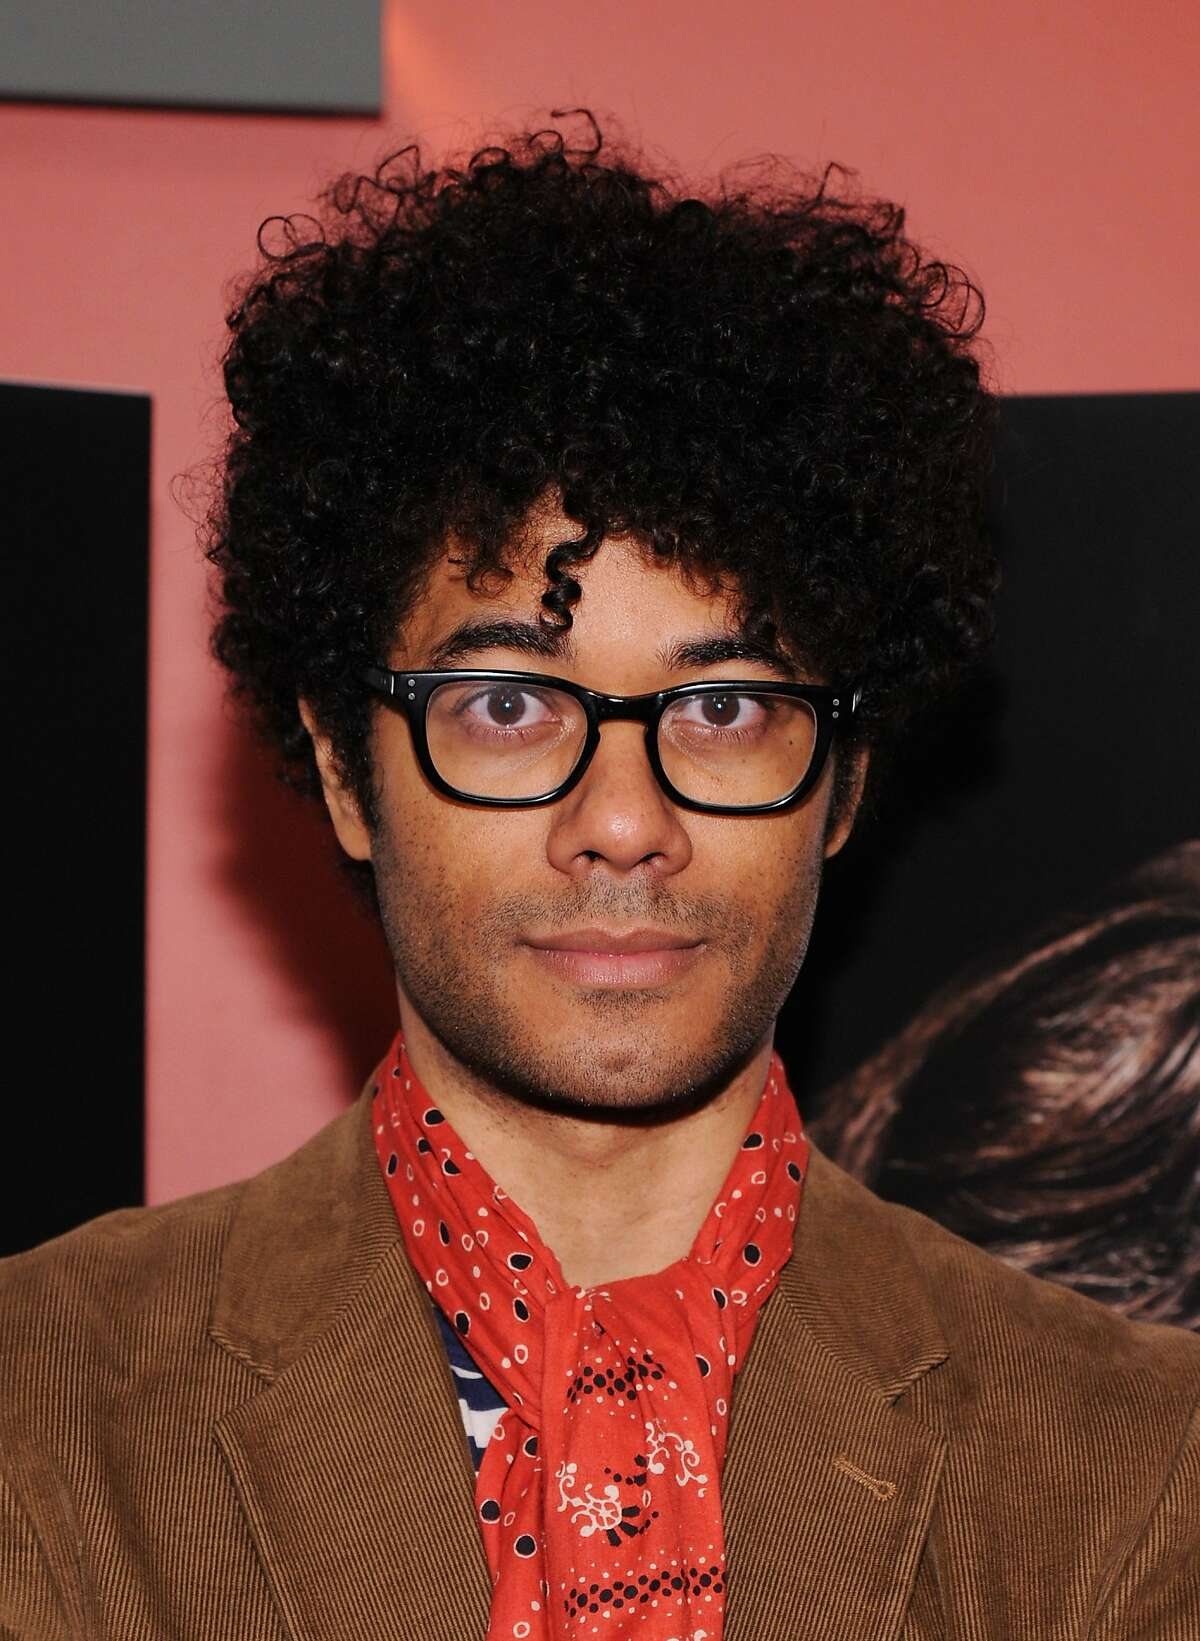 """NEW YORK, NY - APRIL 30: Director Richard Ayoade attends """"The Double"""" screening at Sunshine Landmark on April 30, 2014 in New York City. (Photo by Ilya S. Savenok/Getty Images)"""